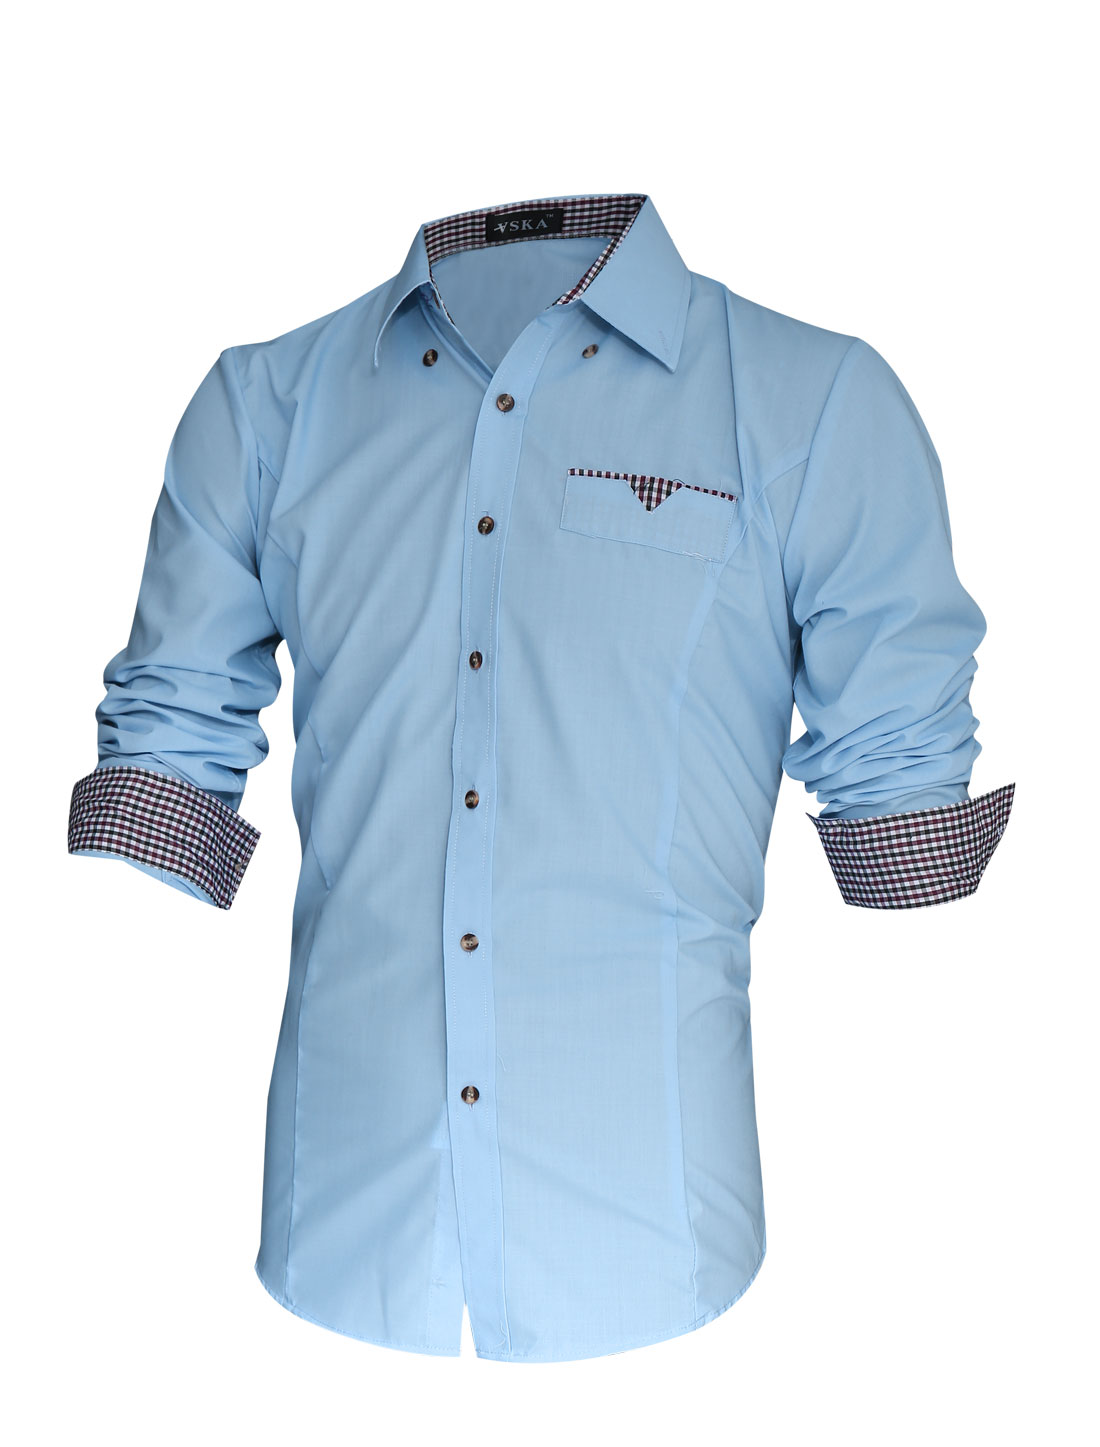 Men Contrast Plaids Detail Button-Front Slim Cut Button Down Shirt Light Blue M